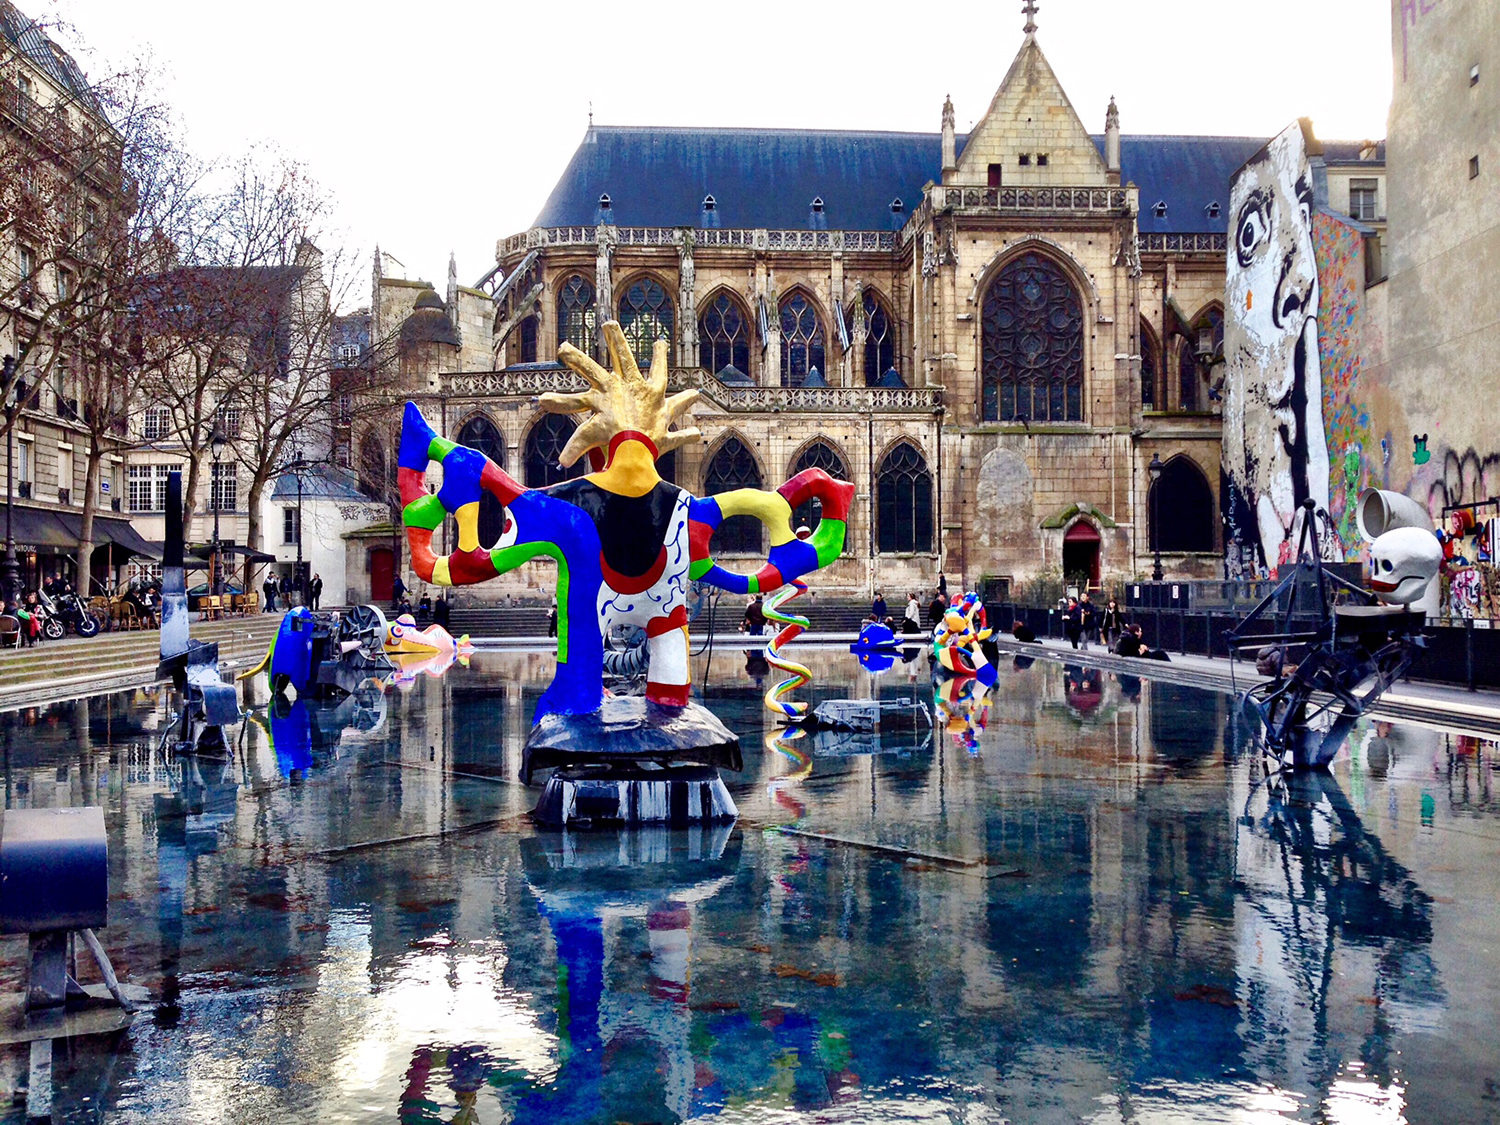 Jean Tinguely and Niki de Saint Phalle